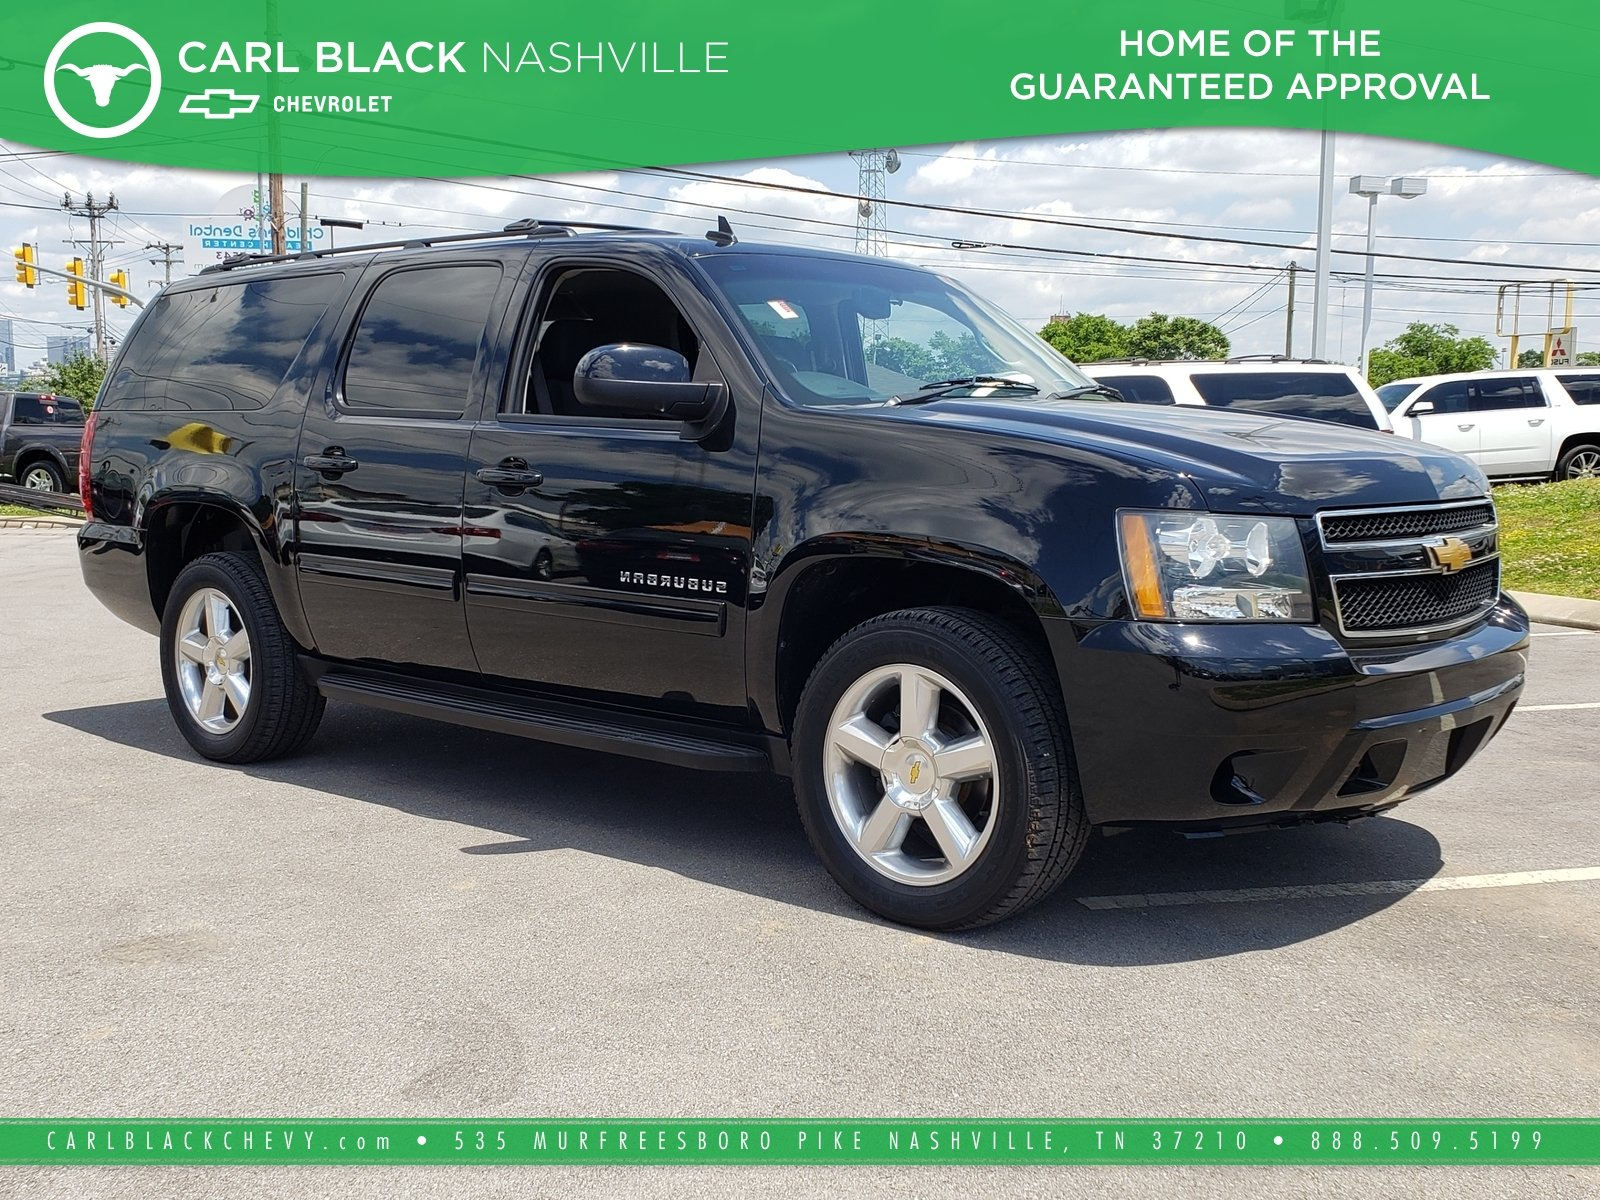 Pre-Owned 2013 Chevrolet Suburban LS